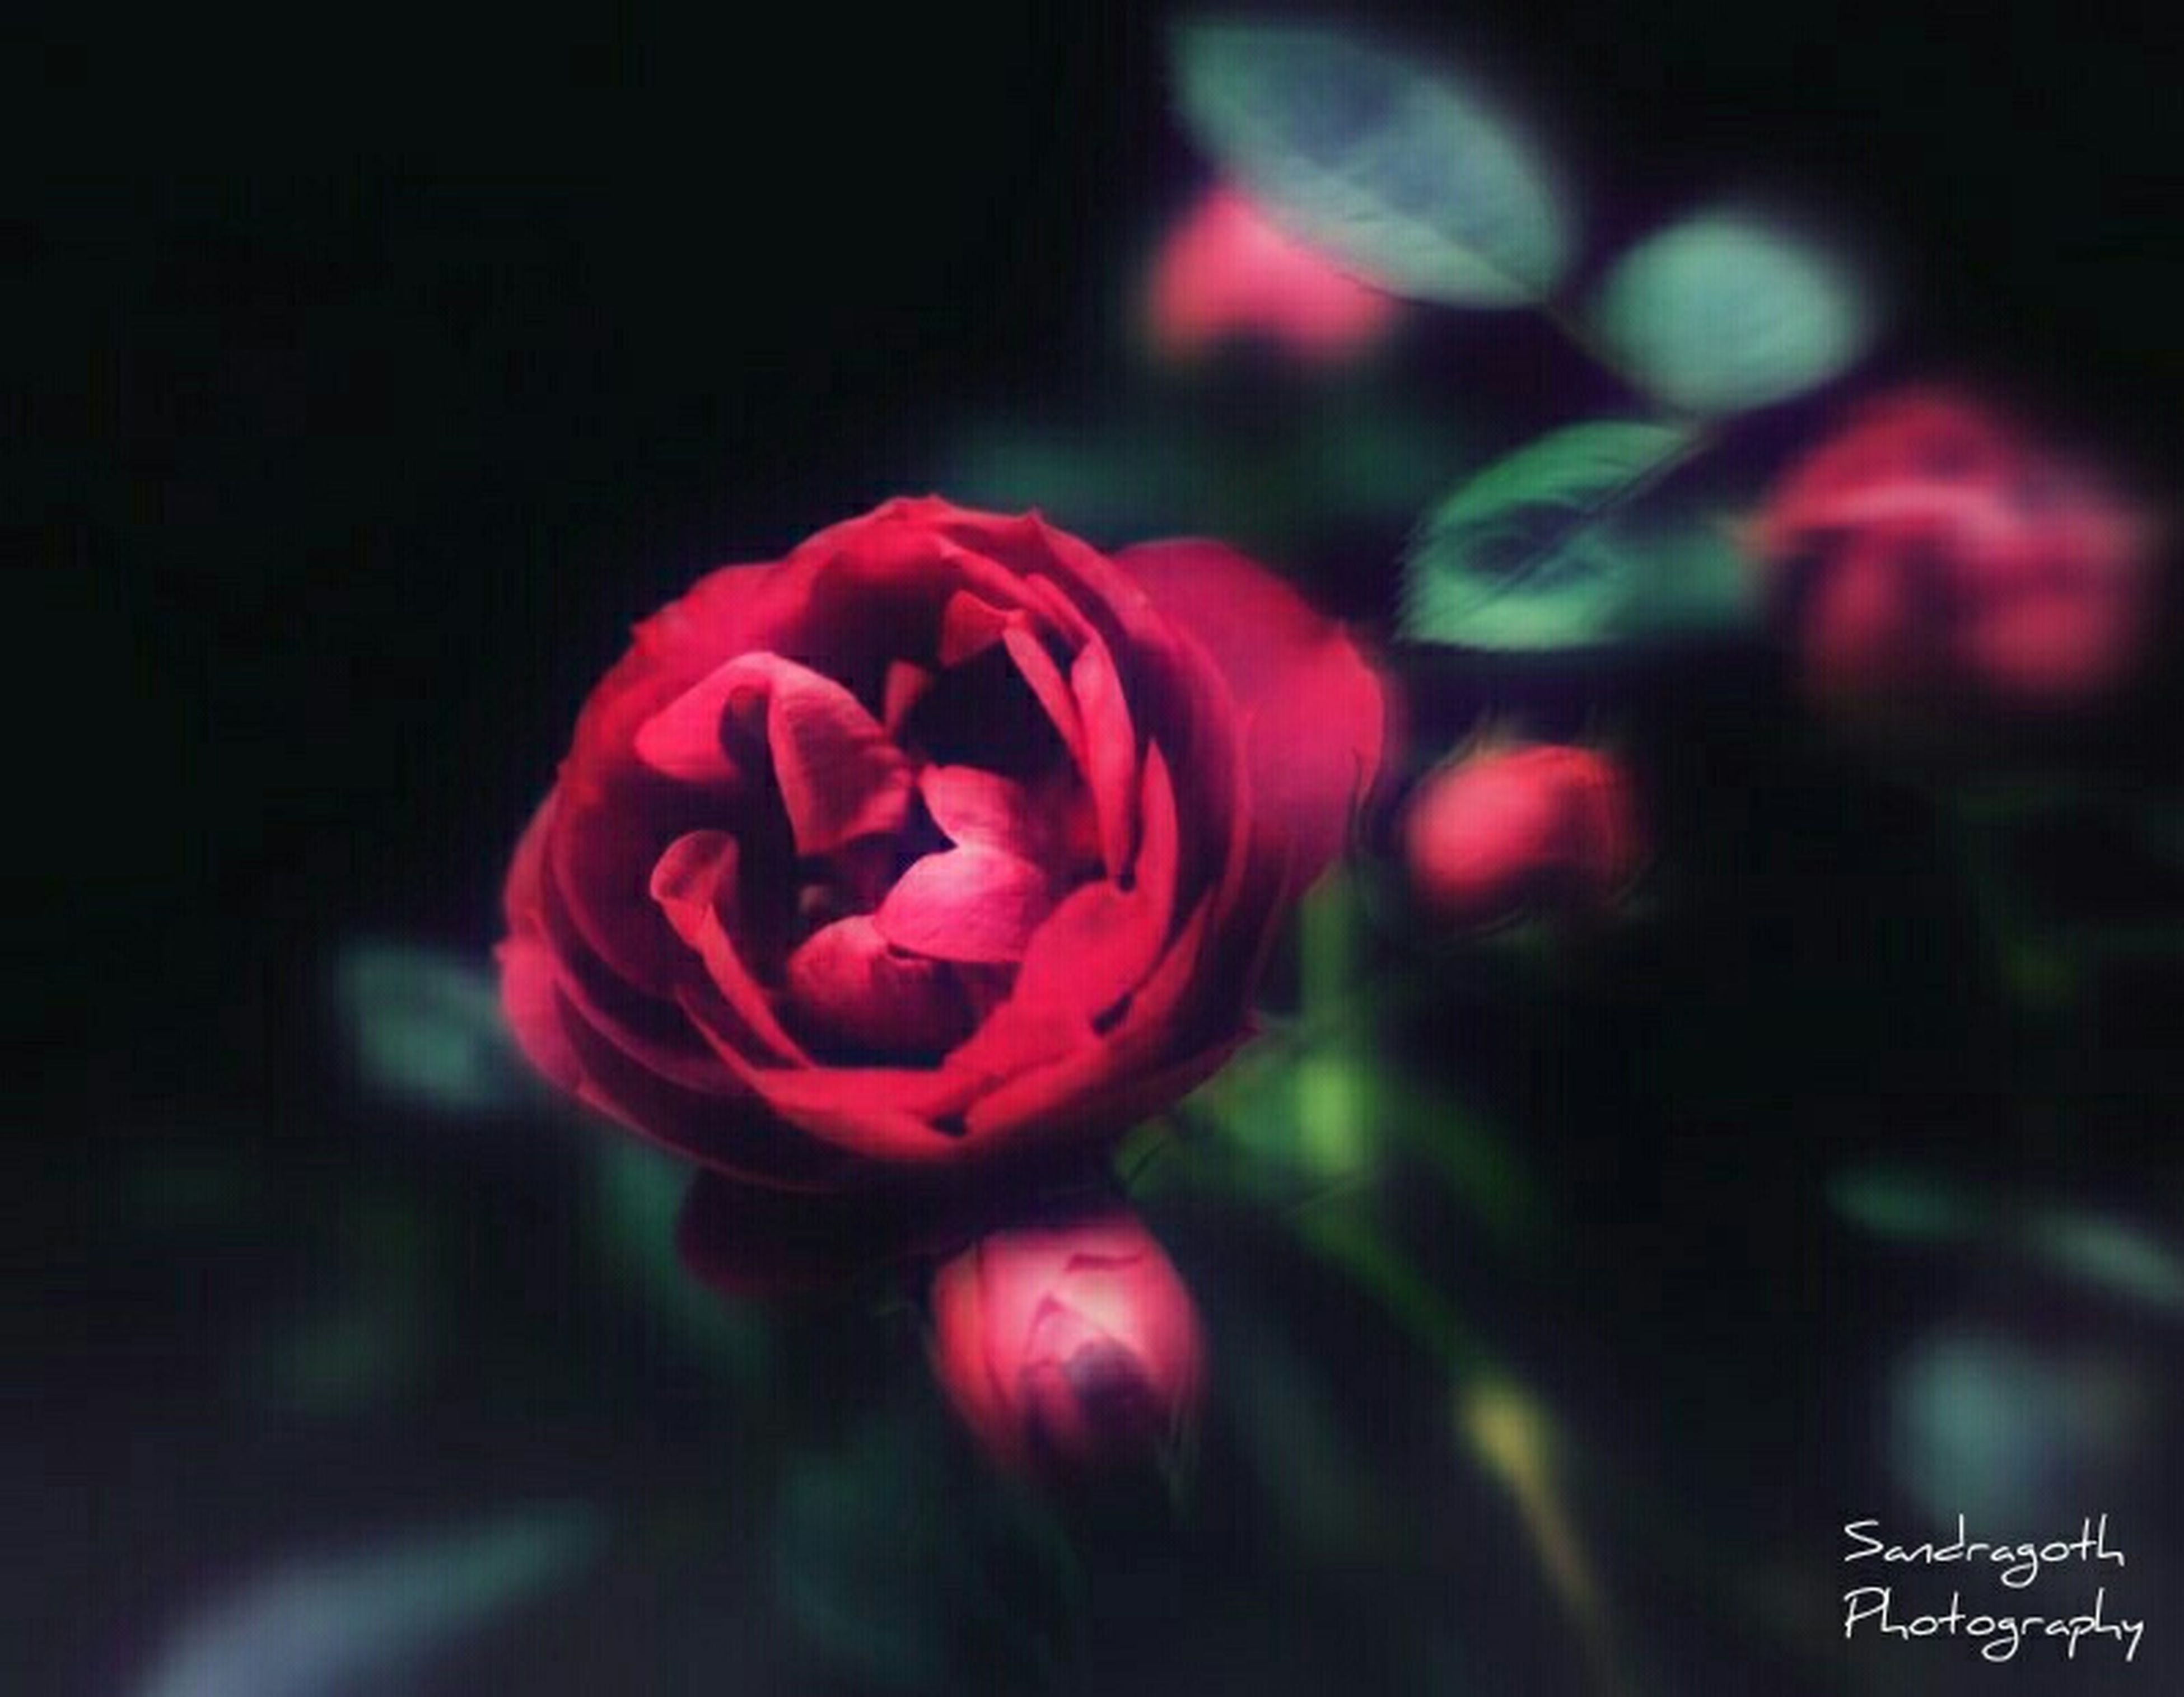 flower, petal, fragility, flower head, rose - flower, freshness, pink color, close-up, night, focus on foreground, beauty in nature, growth, red, nature, rose, selective focus, blooming, no people, illuminated, single flower